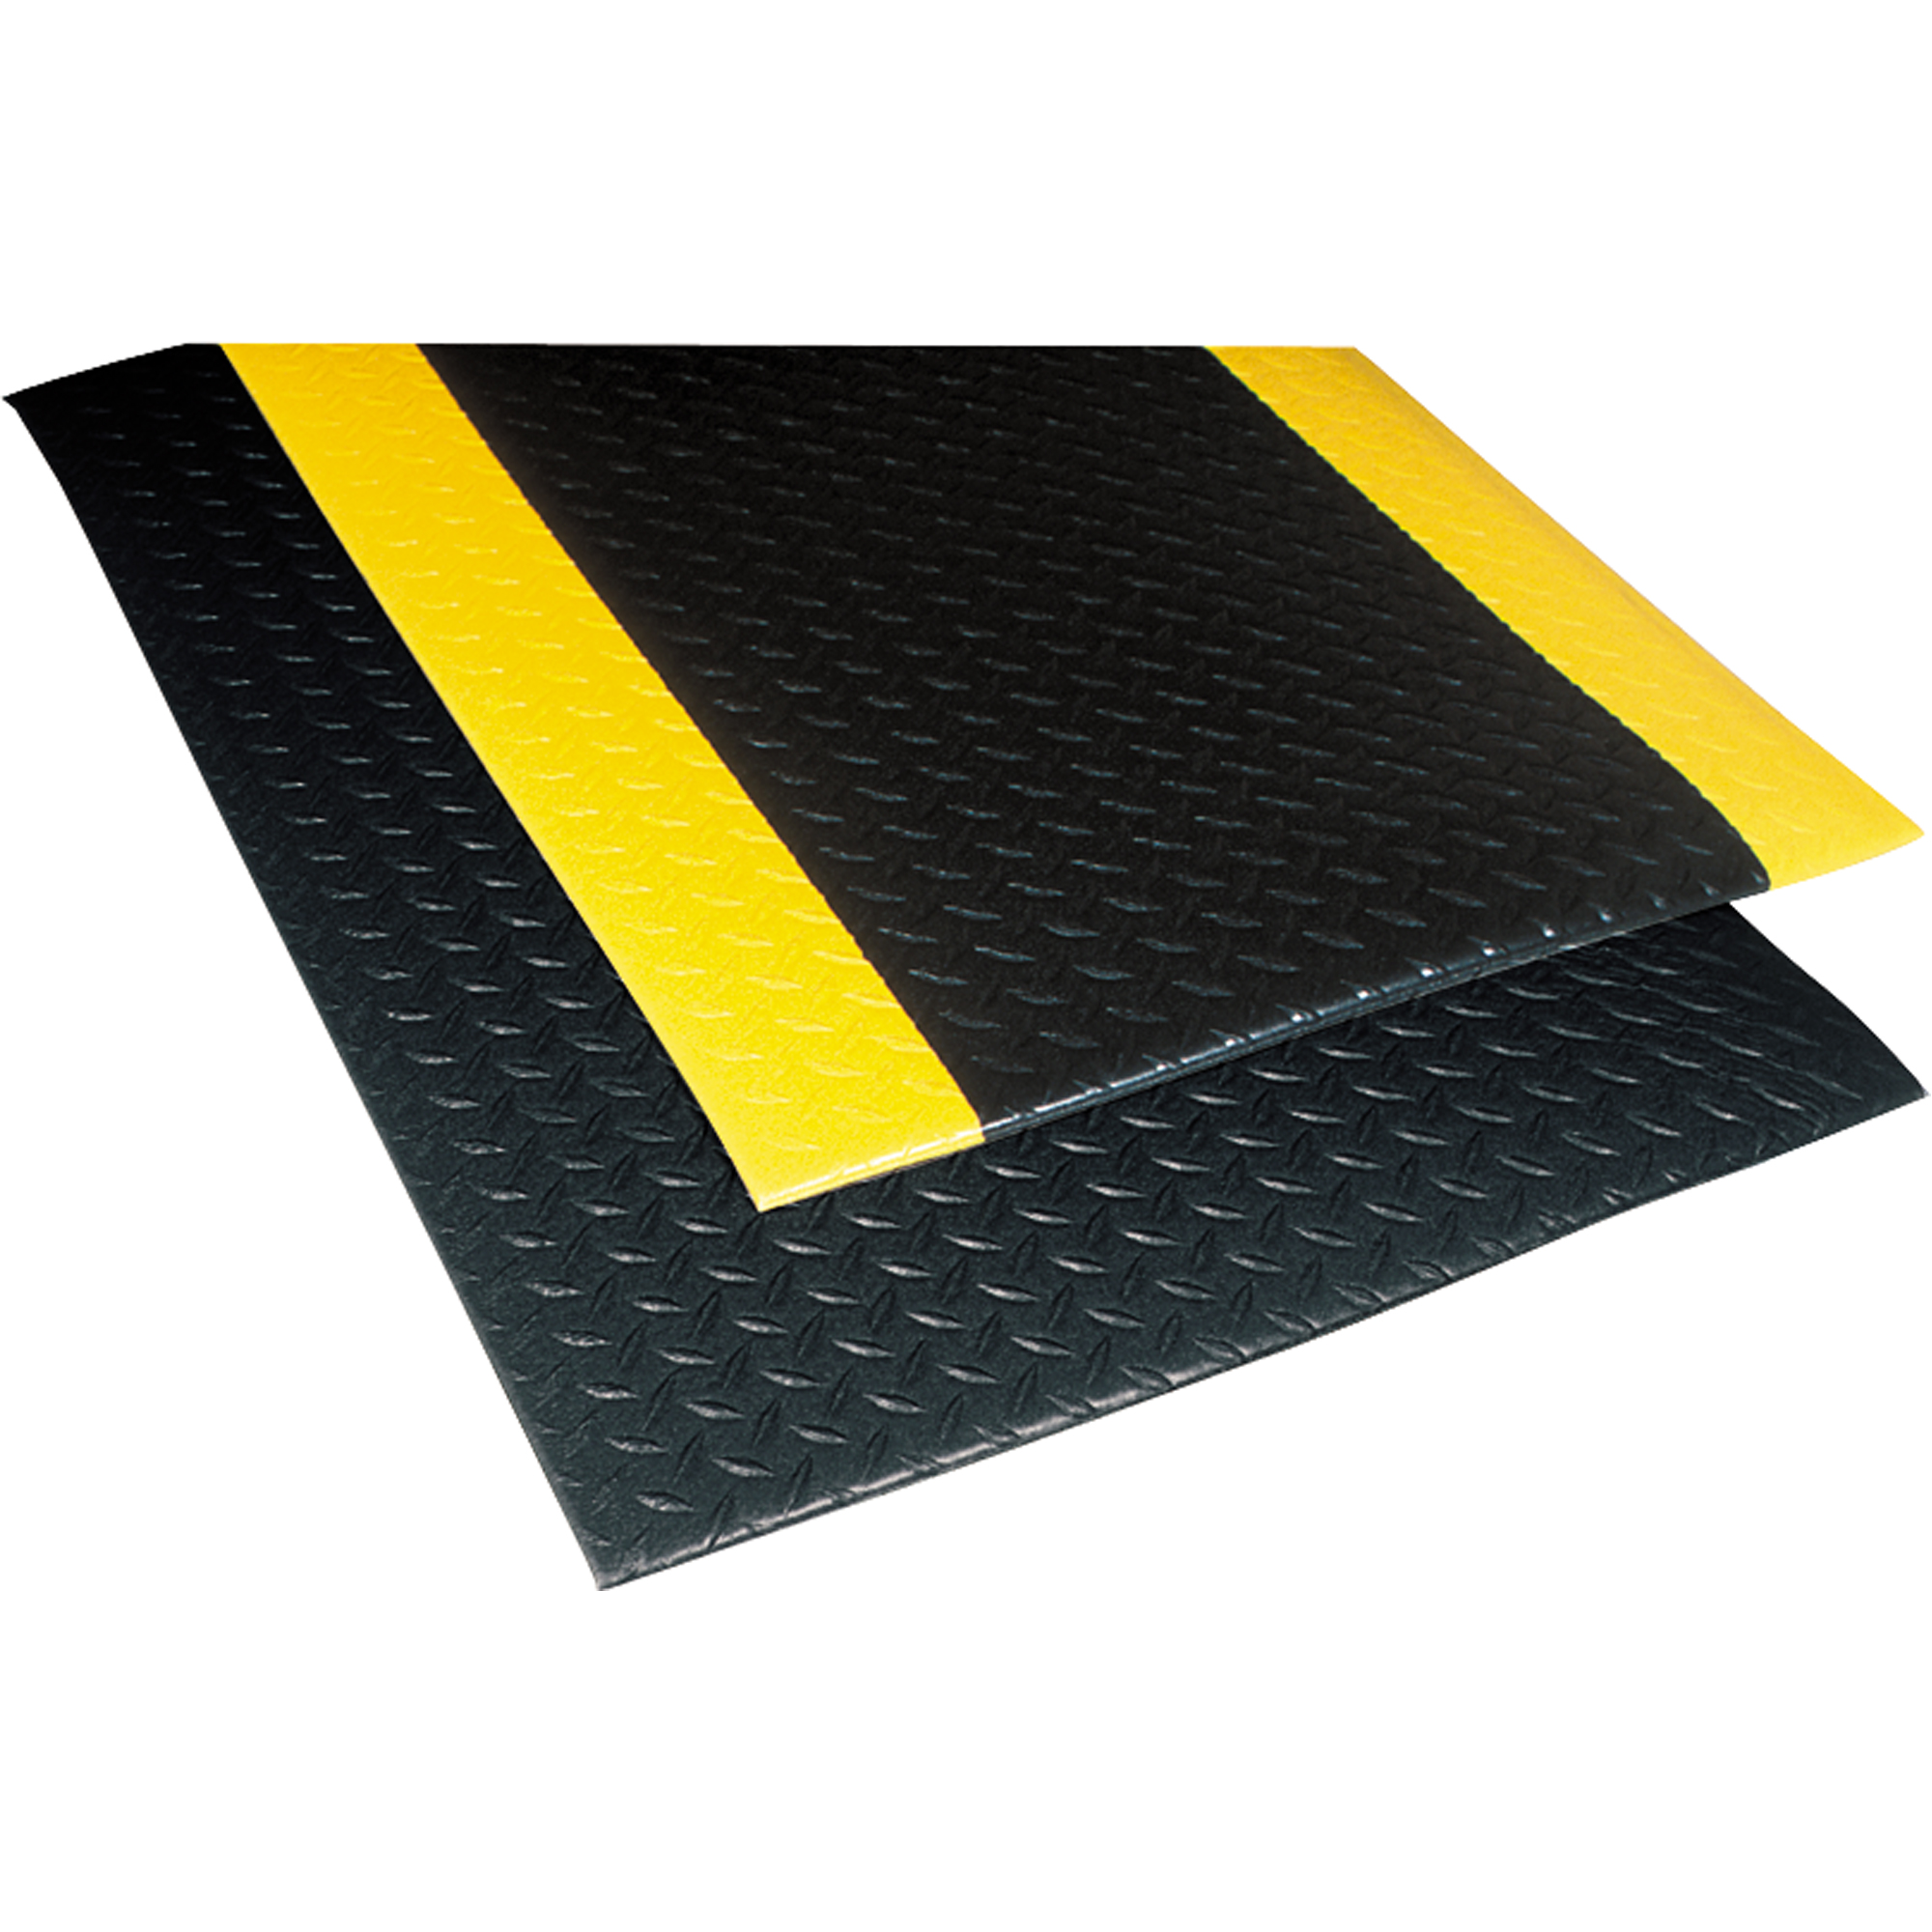 NoTrax 419 Diamond Sof-Tred Safety//Anti-Fatigue Mat with Dyna-Shield PVC Sponge for Dry Areas 3 Width x 4 Length x 1//2 Thickness Black//Yellow 3/' Width x 4/' Length x 1//2 Thickness Superior Manufacturing B009PIKQ9I